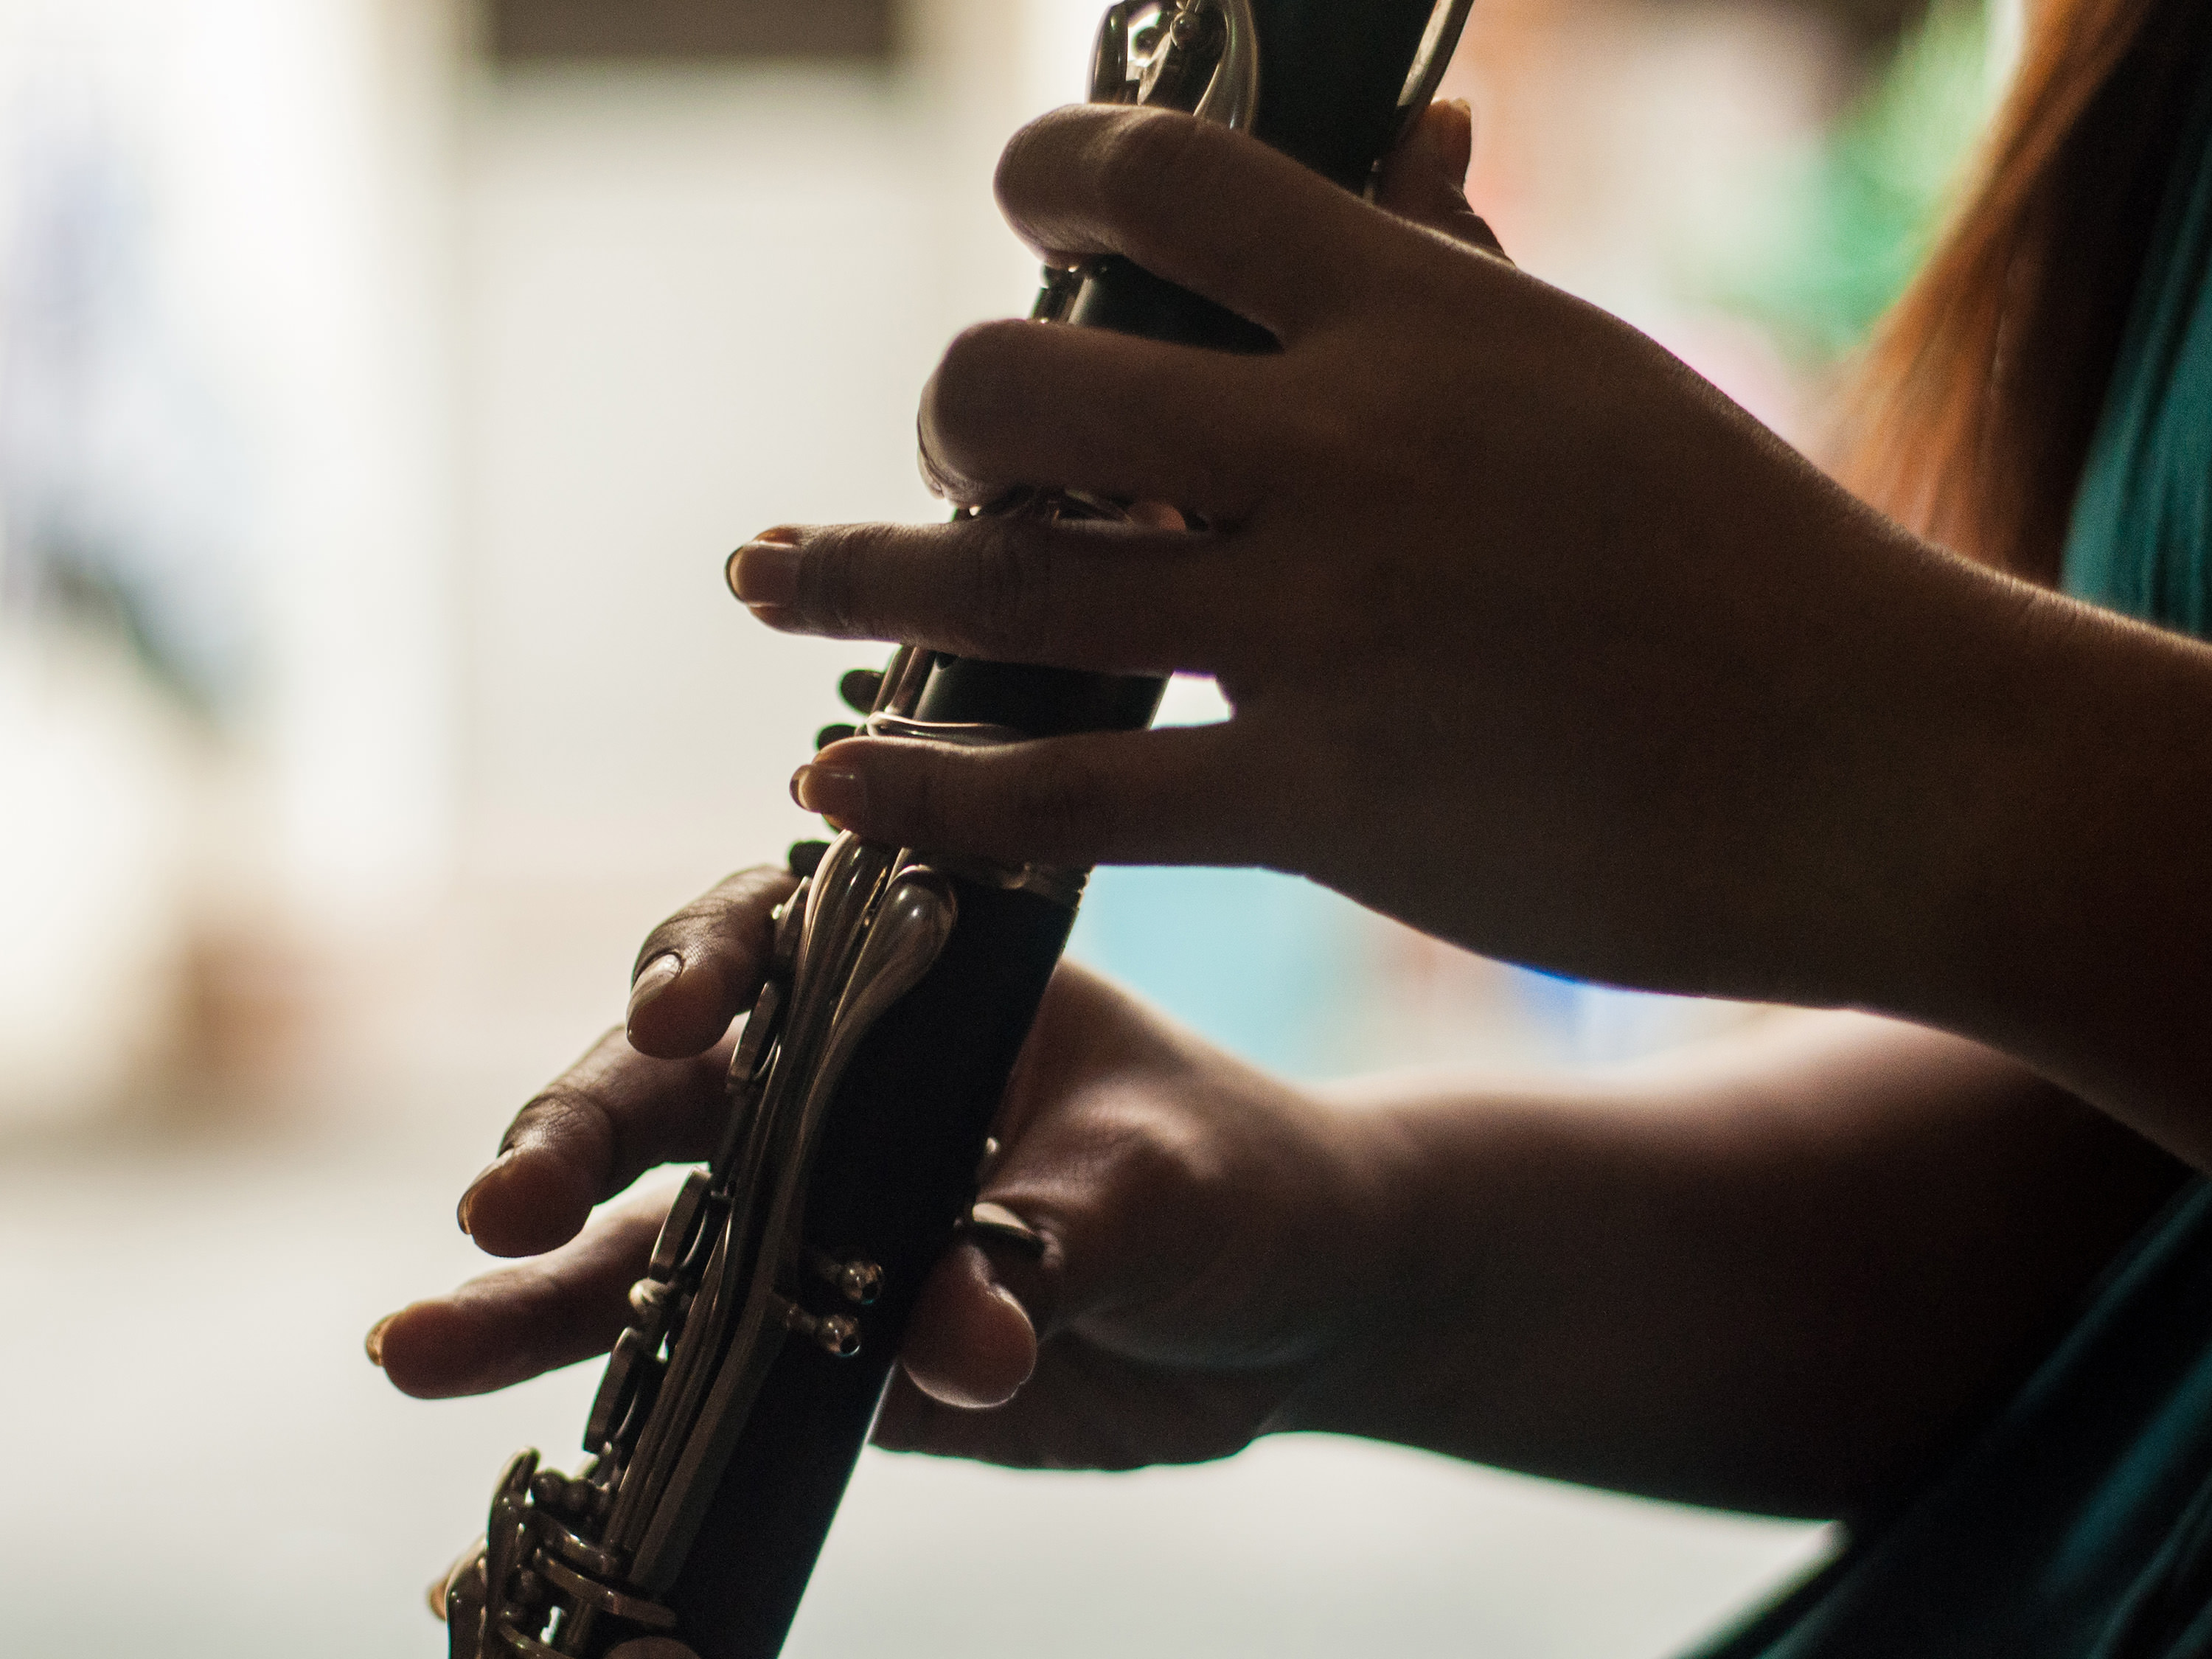 Teach-Someone-to-Play-Clarinet-Step-6